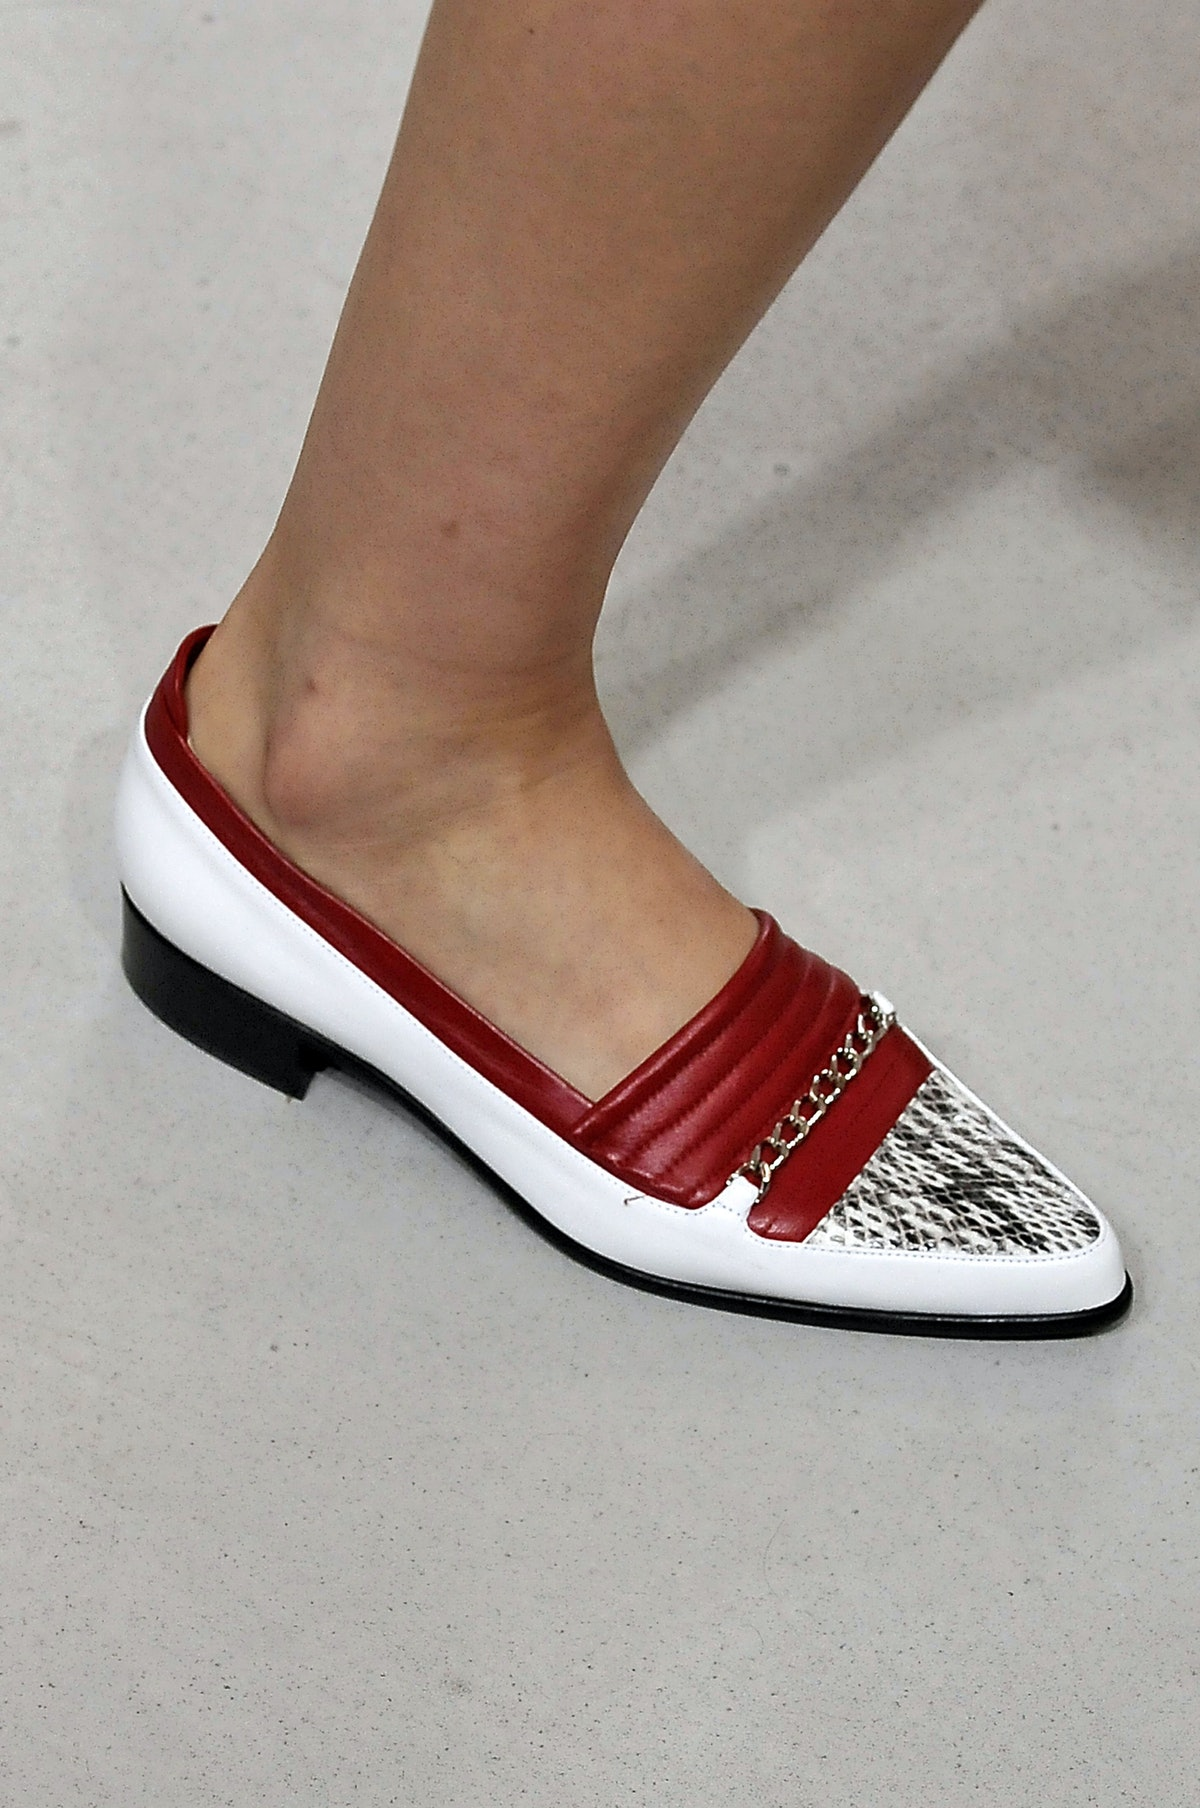 creatures-of-the-wind-spring-2014-shoes